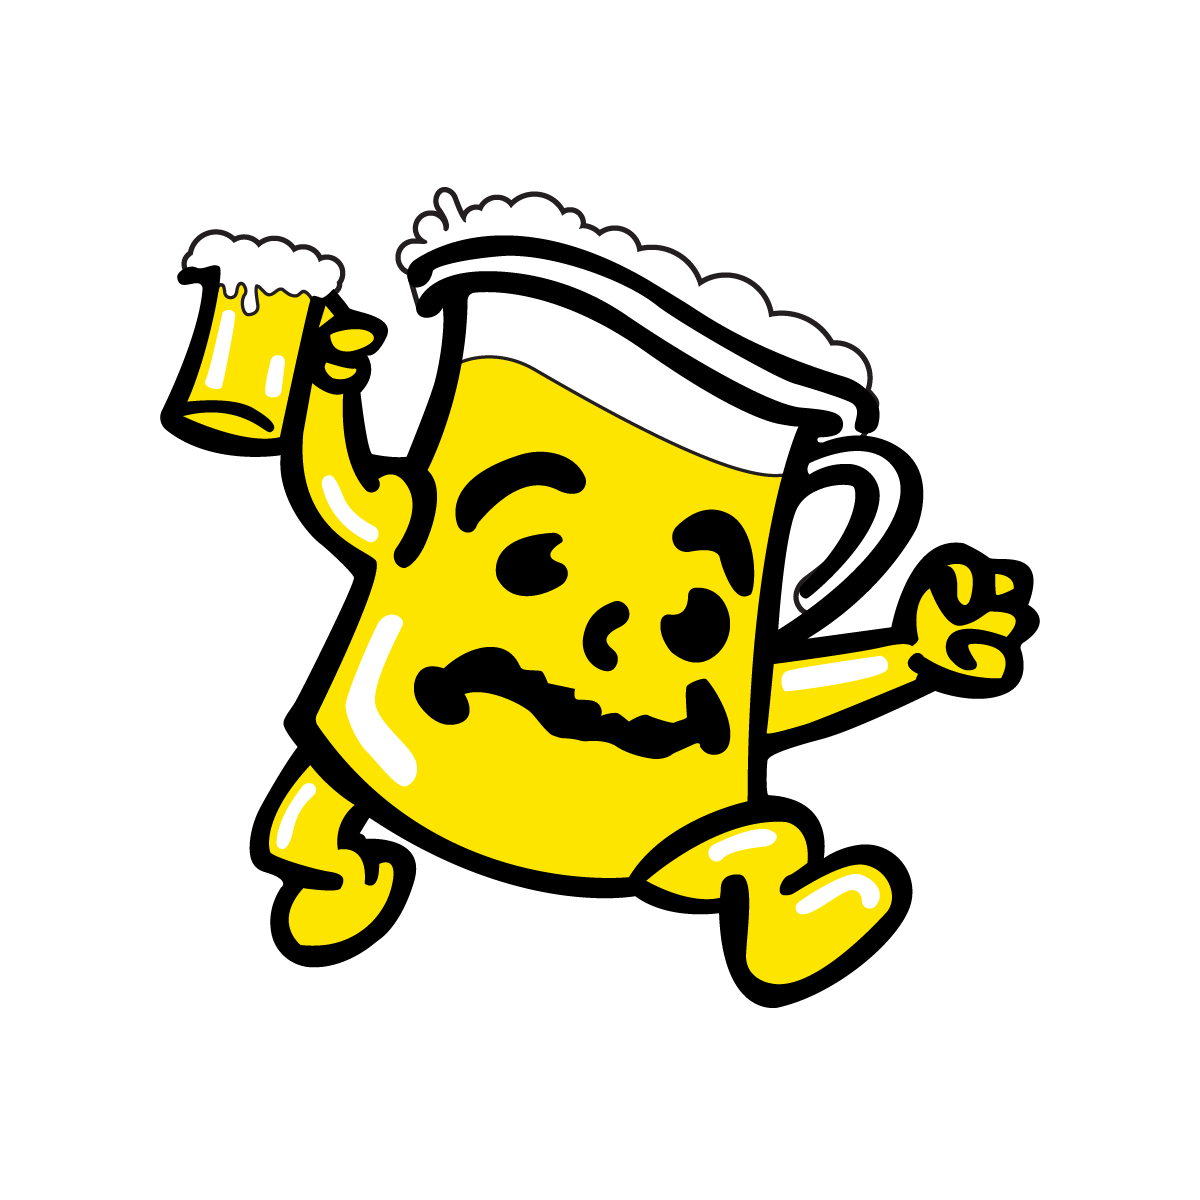 Riot fest clipart picture transparent stock The Commercialization of World Emoji Day | Riot Fest picture transparent stock